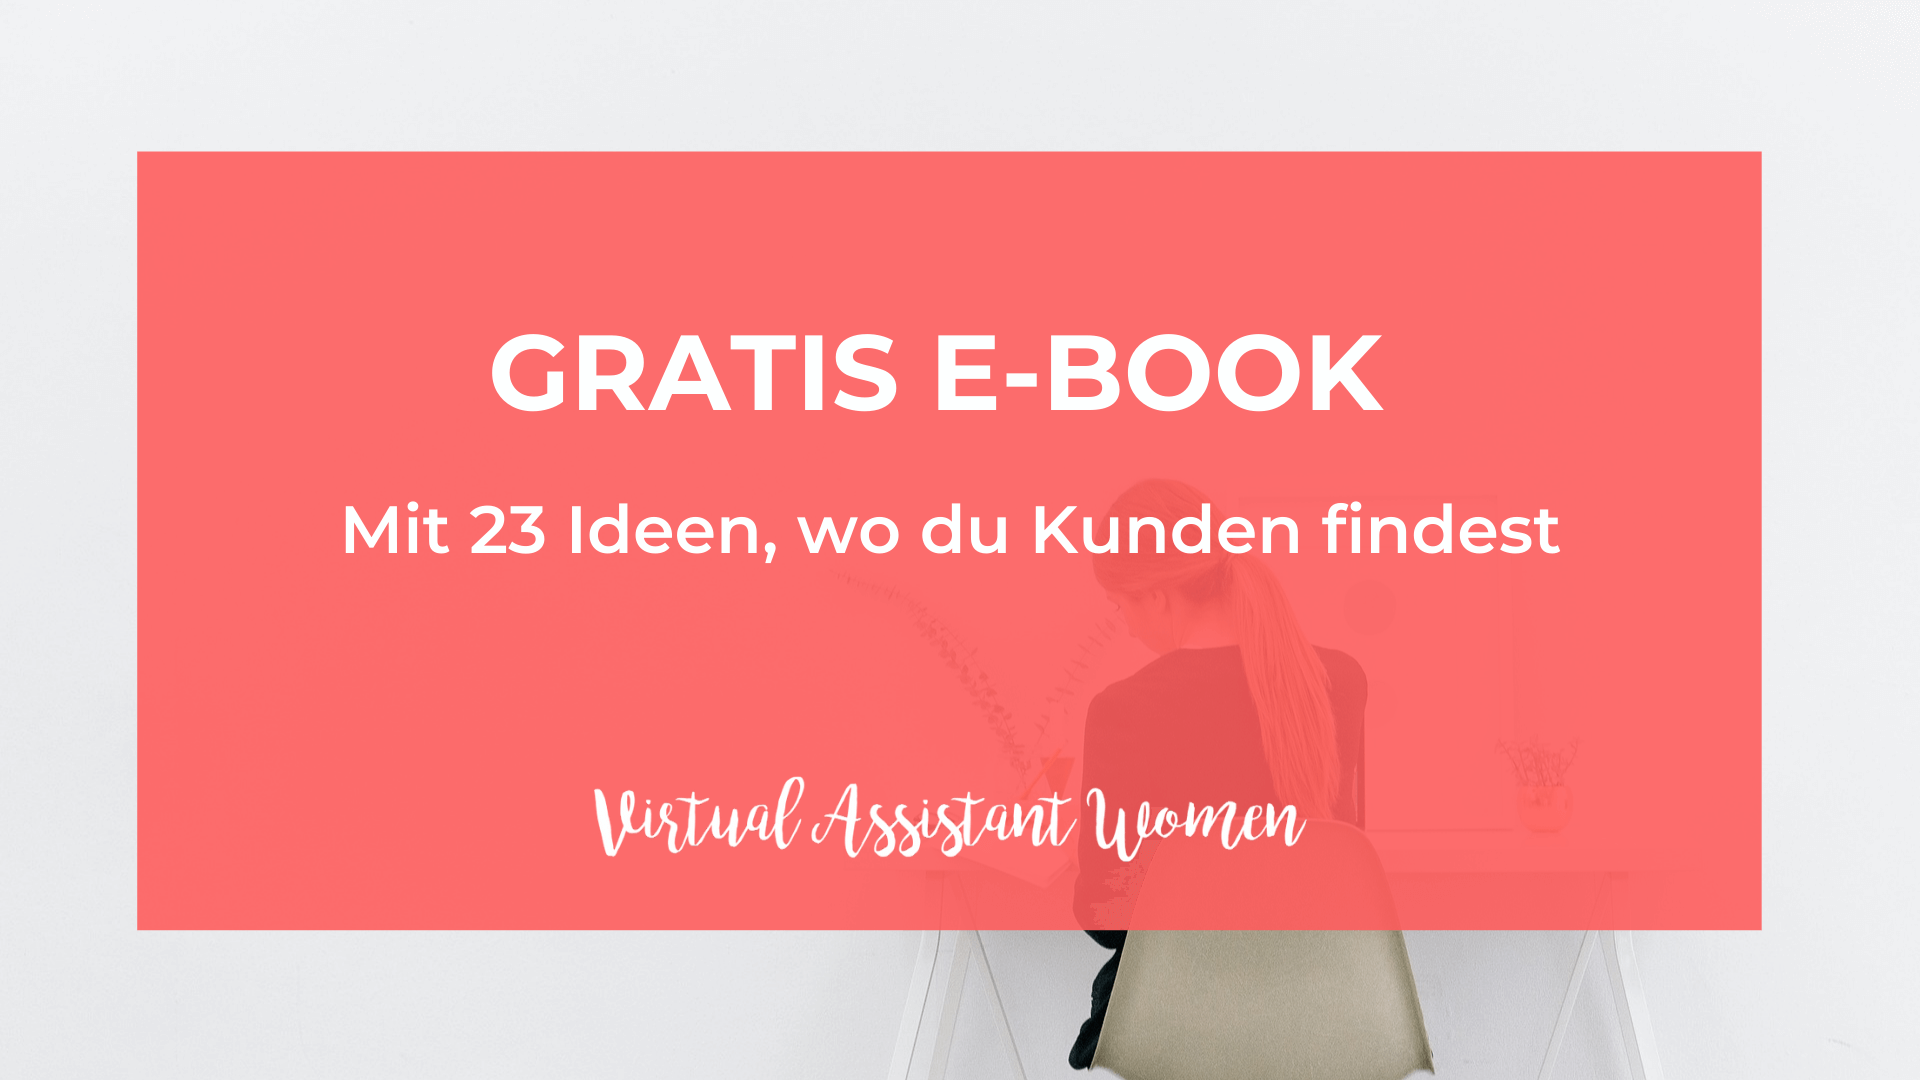 virtuelle assistenz e-book